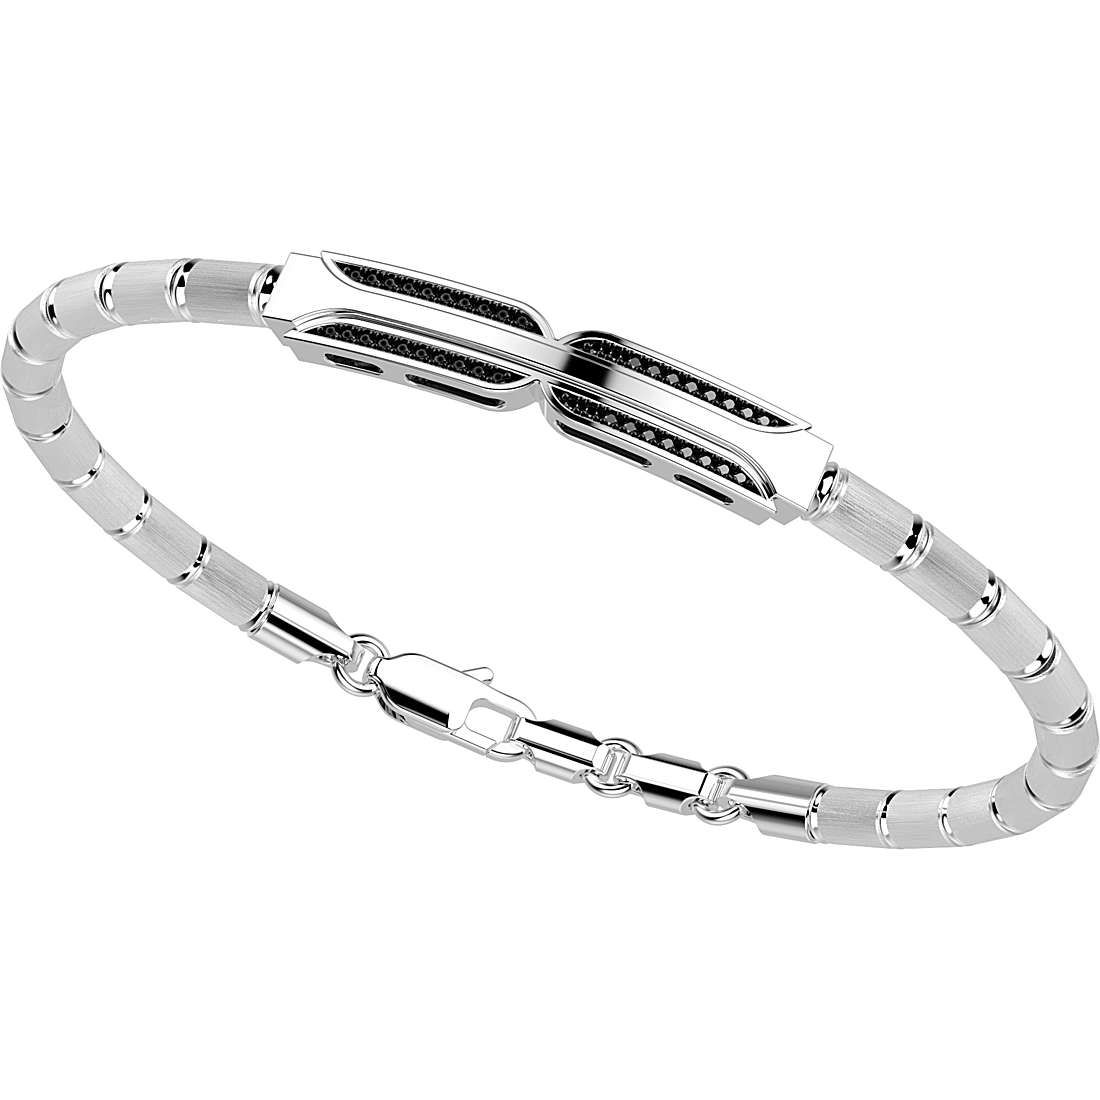 ZANCAN Bracelet semi-rigid silver and spinelli black REF. EXB604-B